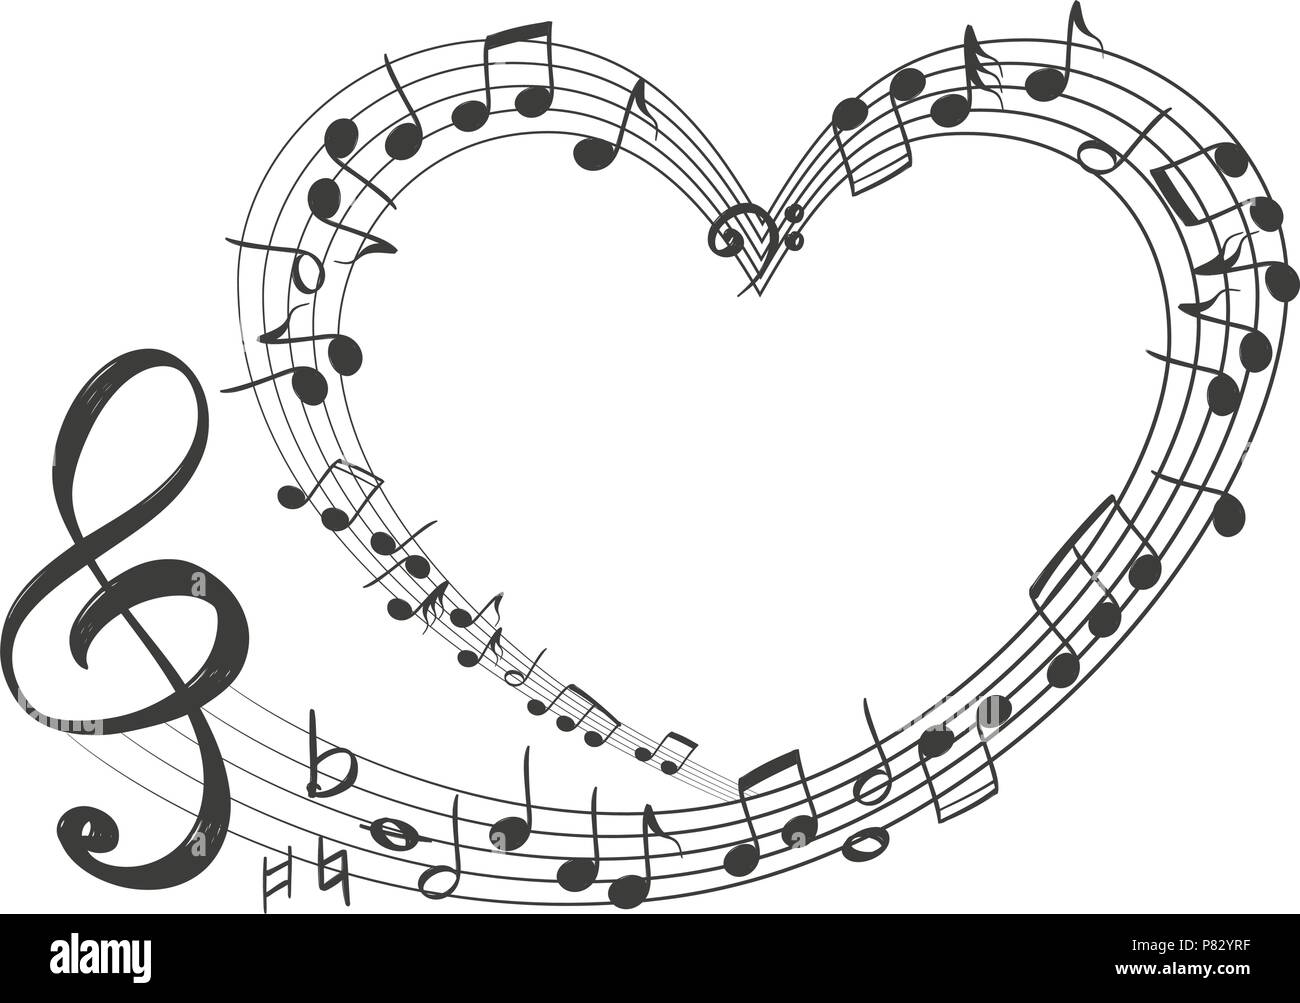 Musical notes in the form of a heart icon love music hand drawn musical notes in the form of a heart icon love music hand drawn vector illustration sketch ccuart Image collections